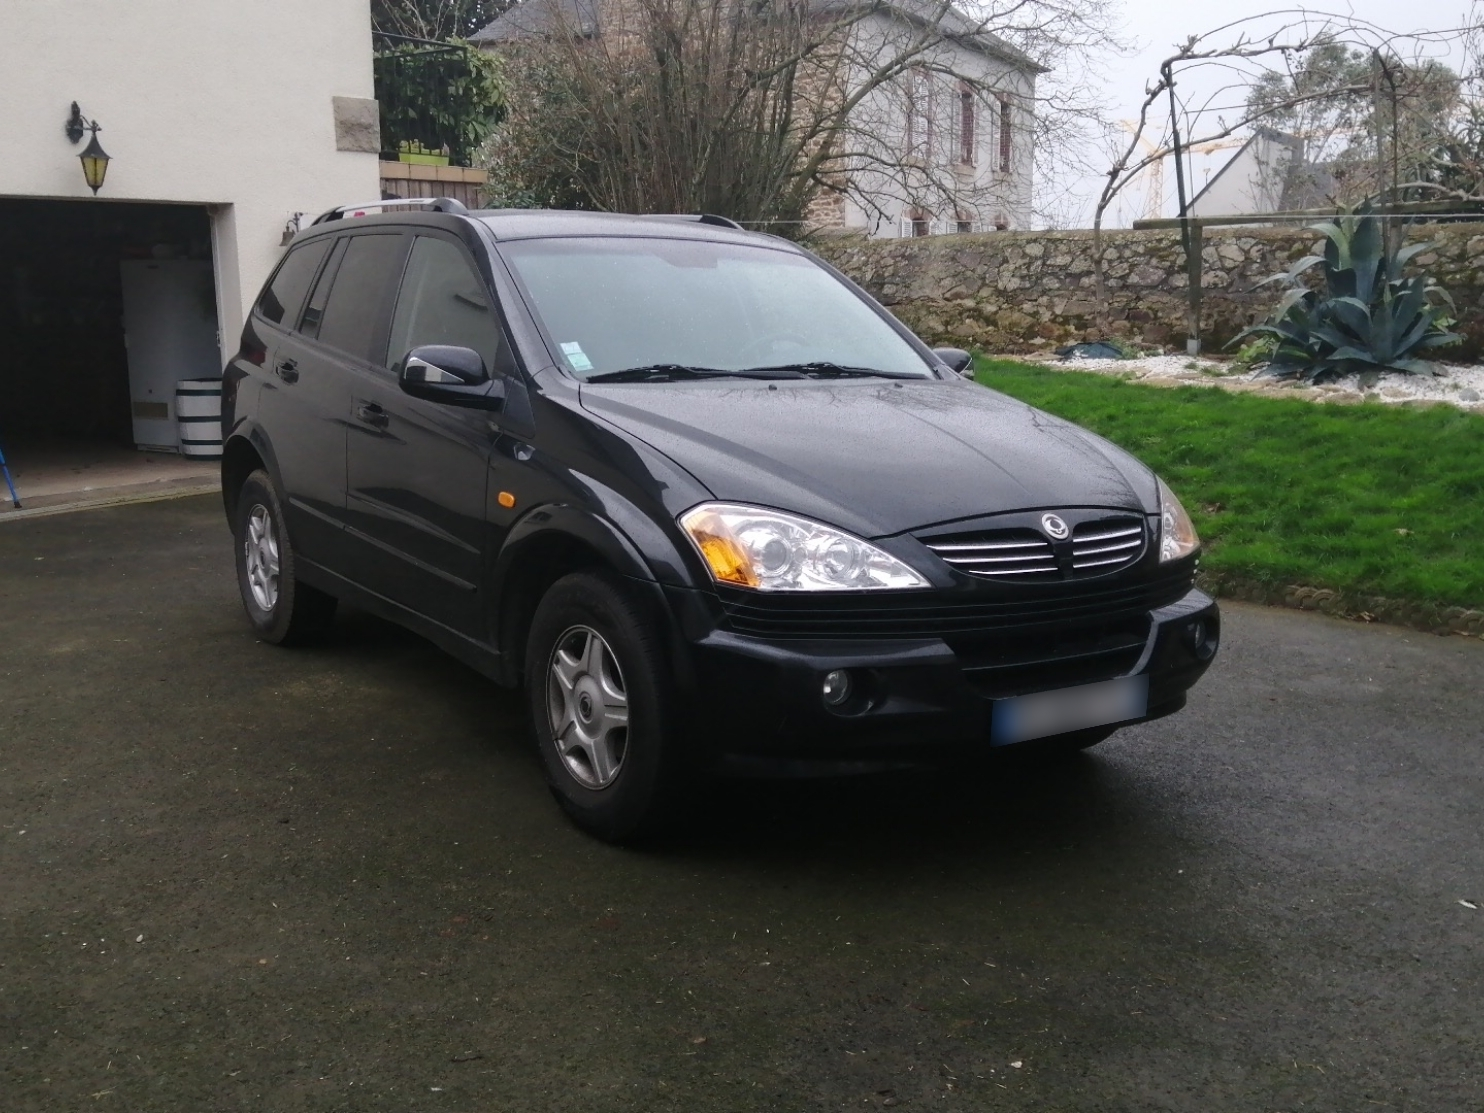 SSANGYONG KYRON 2.0 XDI 140 CONFORT 4WD